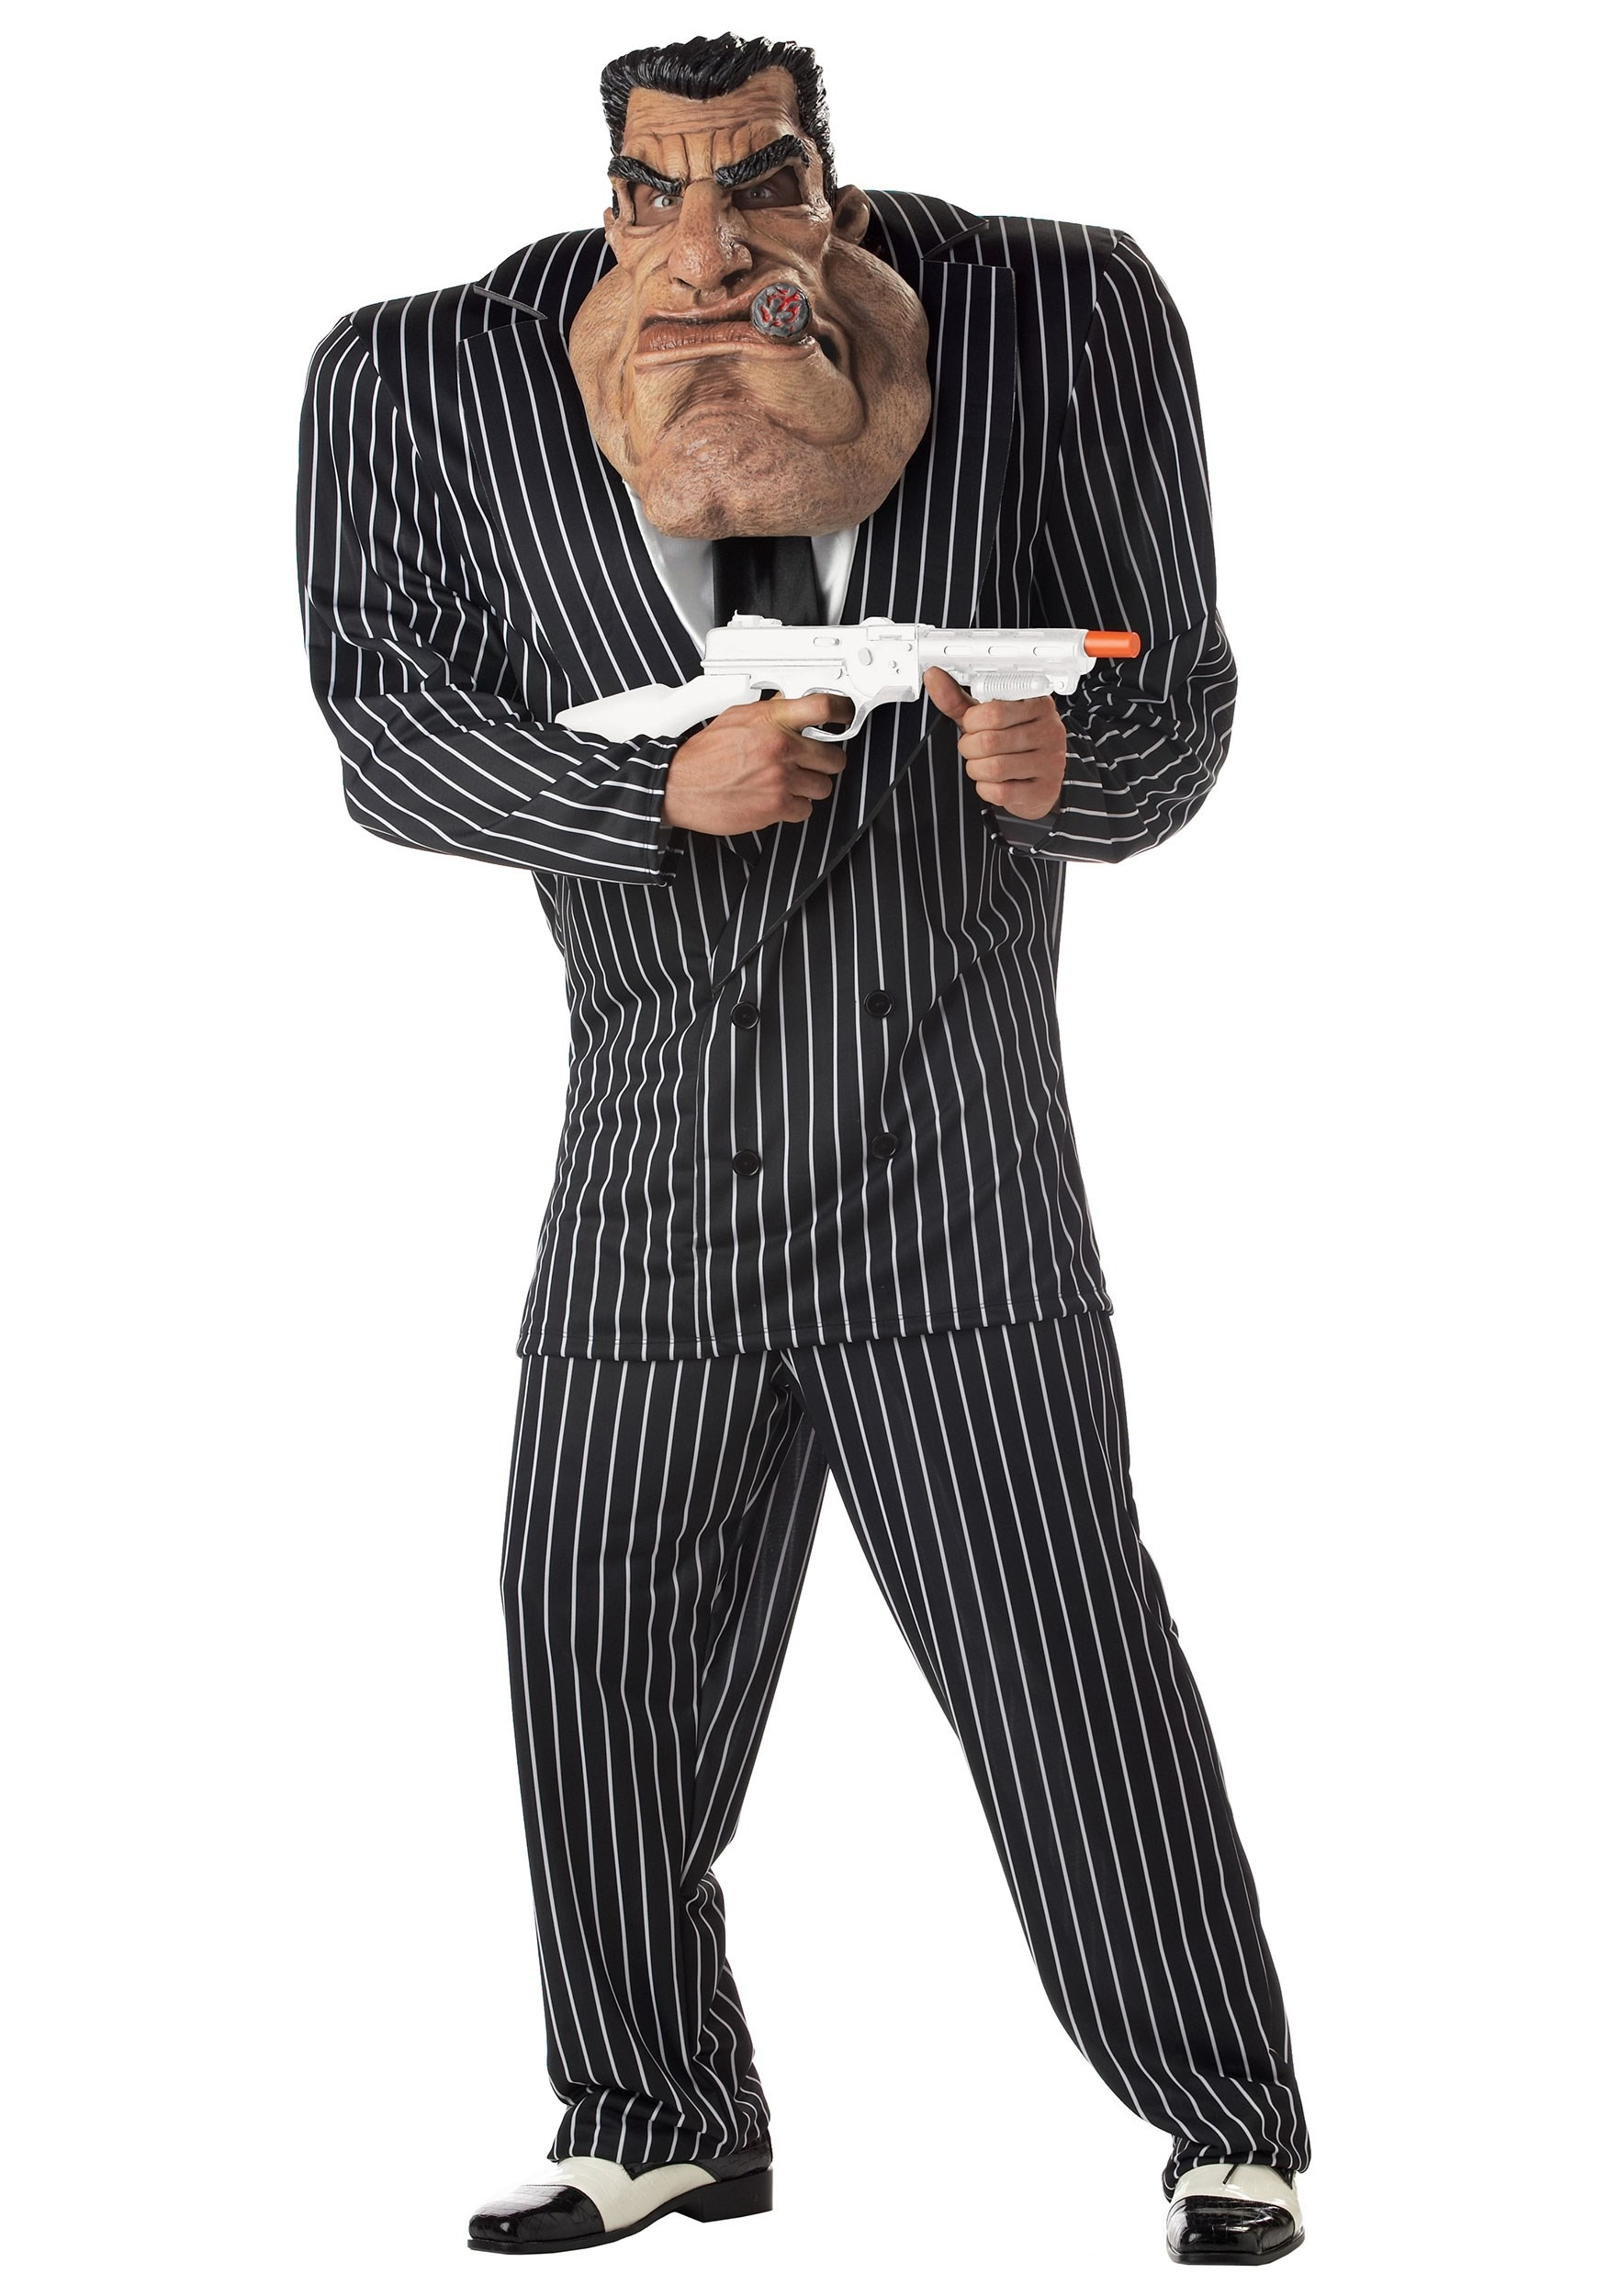 massive mobster halloween costume - Halloween Mobster Costumes